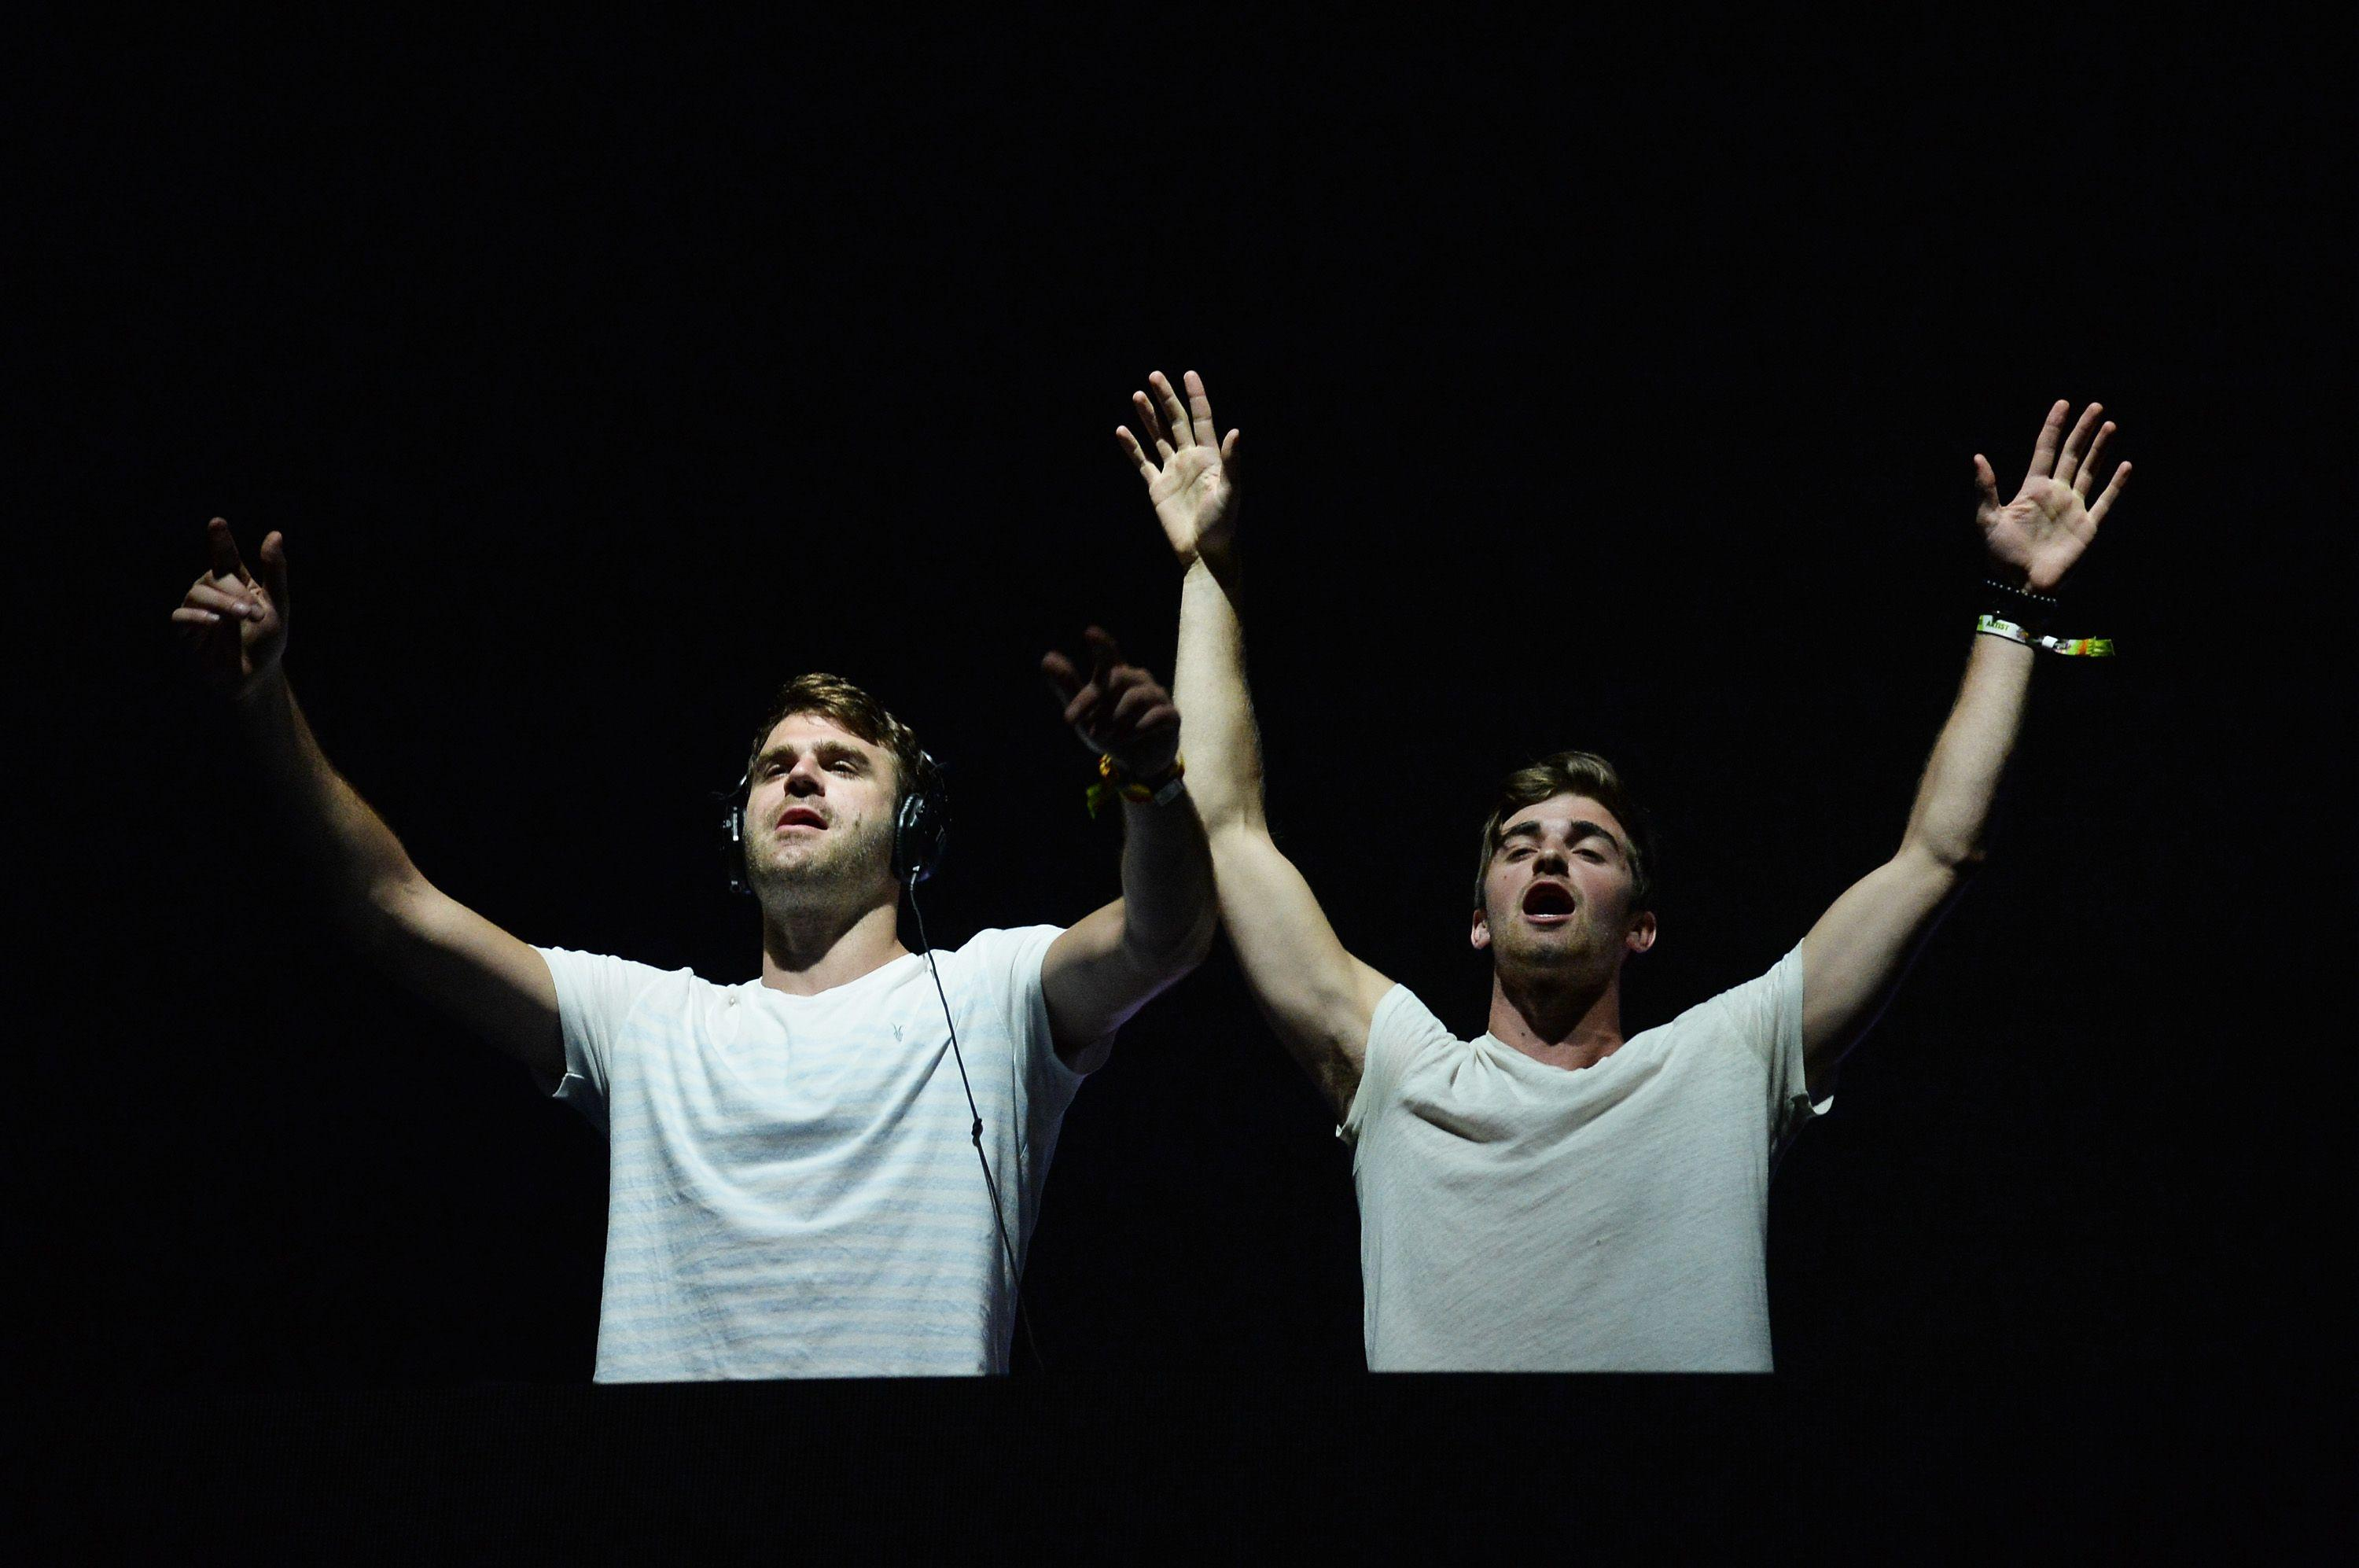 The Chainsmokers Wallpaper HD | Full HD Pictures